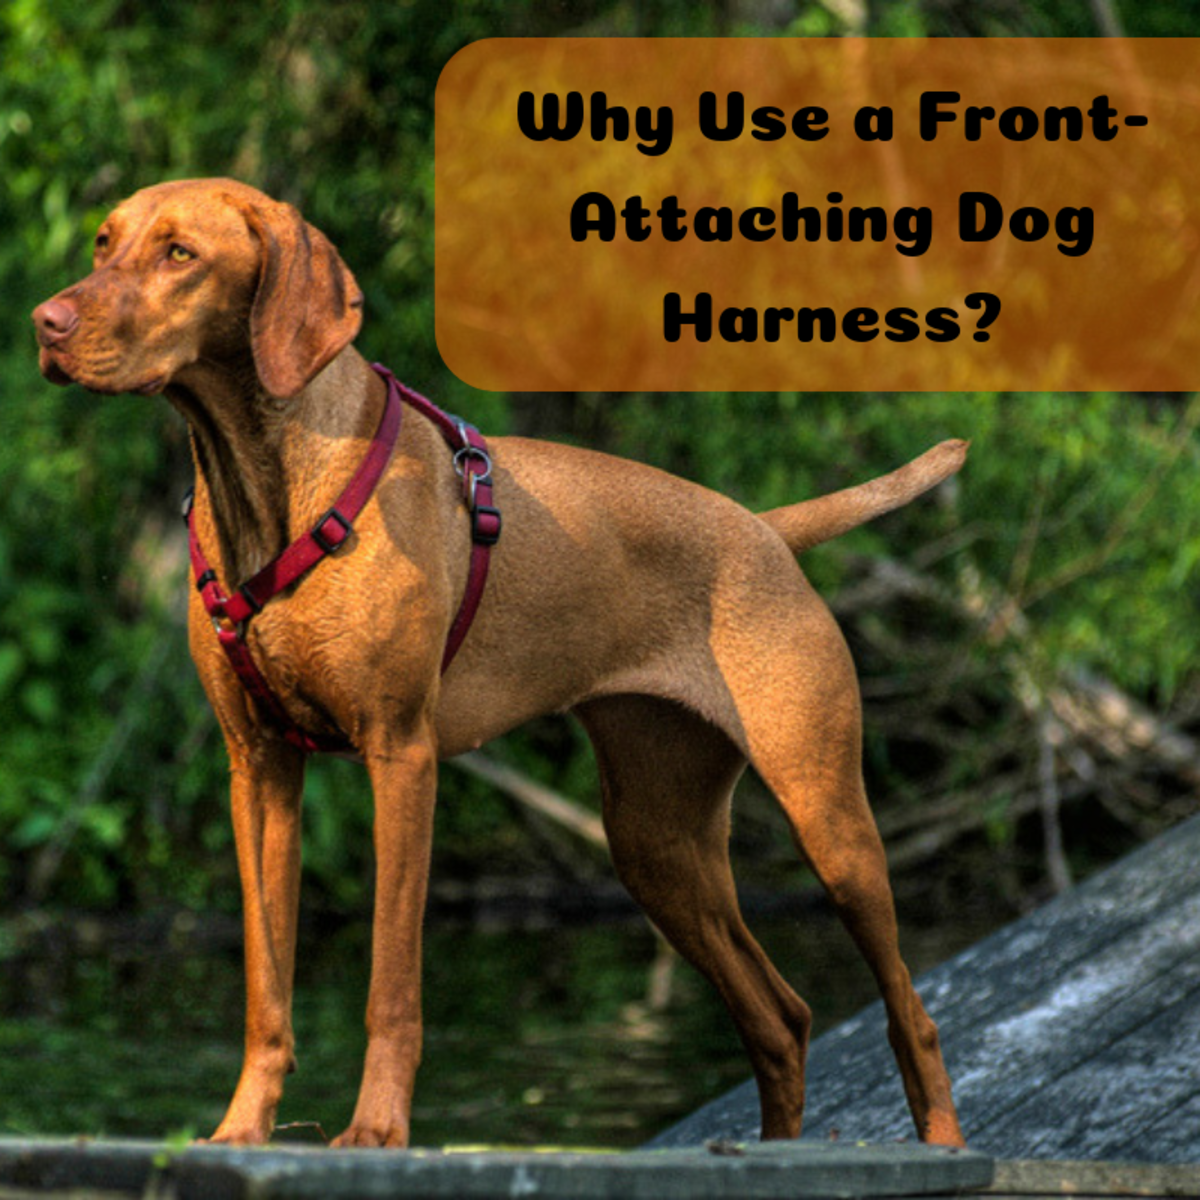 Benefits and Advantages of Front-Attaching Harnesses for Dogs